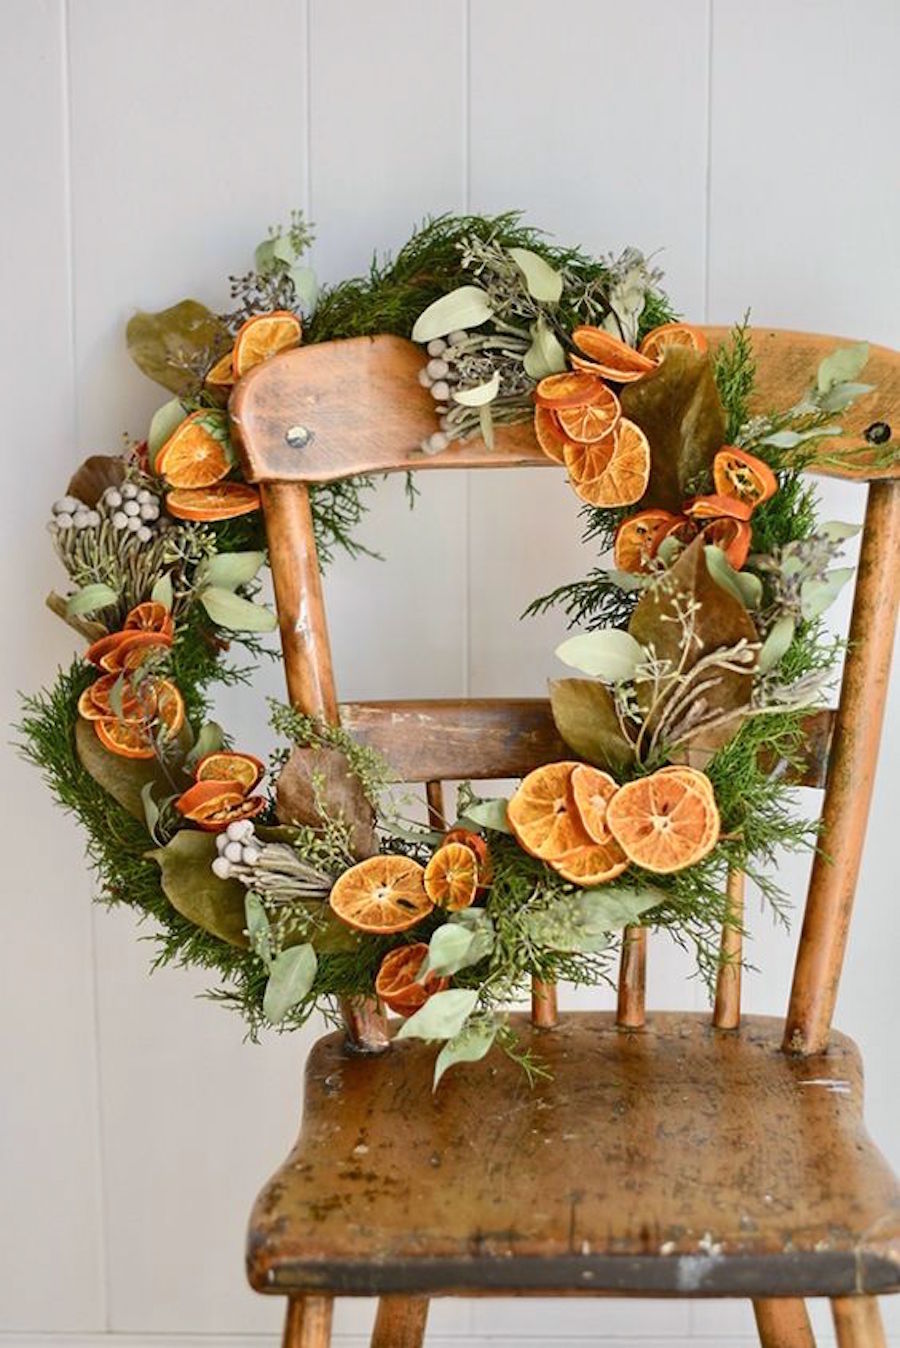 Christmas dried Fruity Wreath on a wooden chair